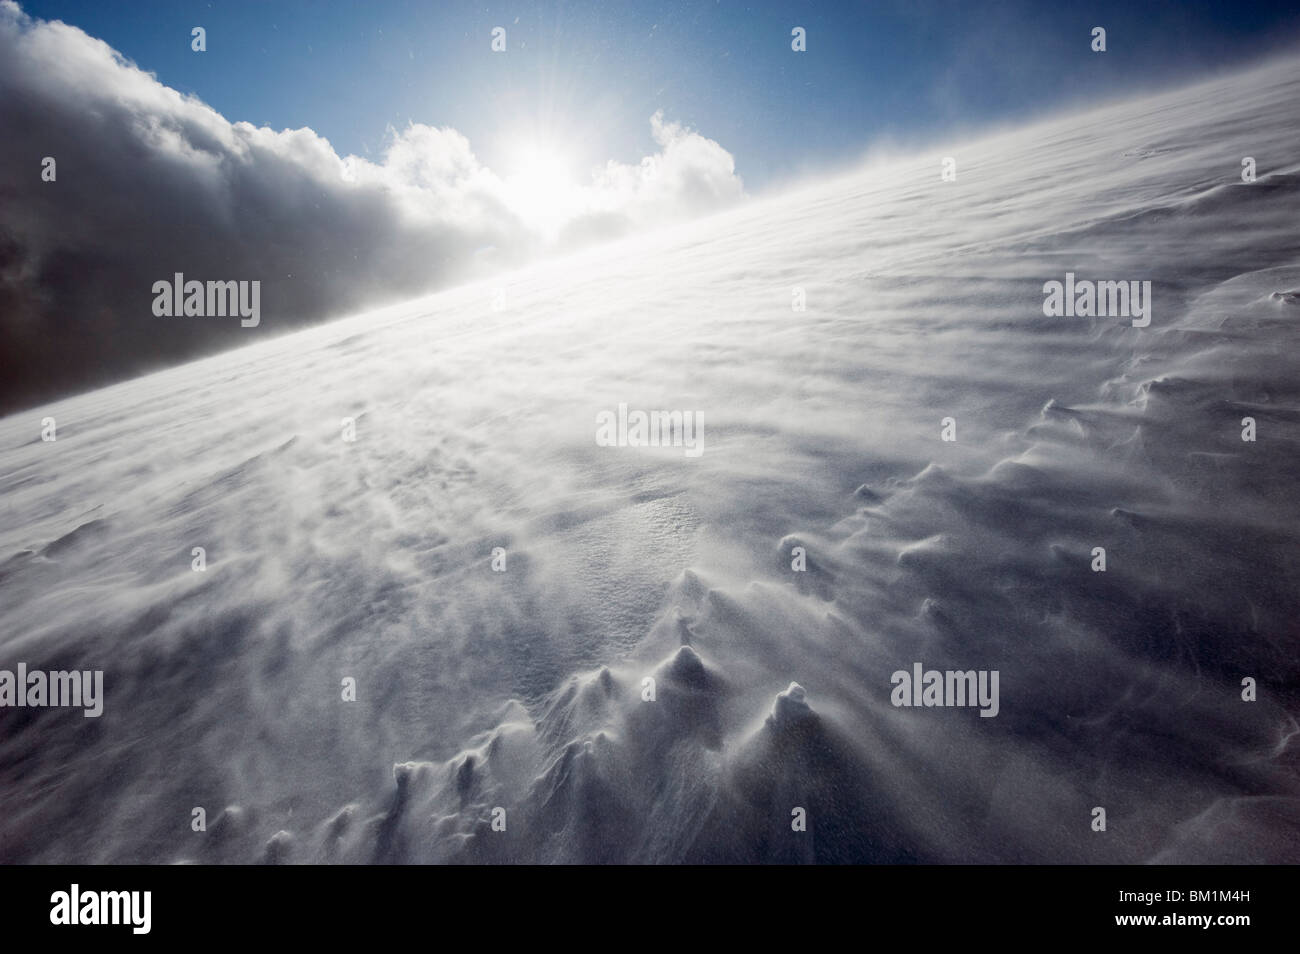 Wind blowing over snow covered Mount Fuji, Shizuoka Prefecture, Japan, Asia - Stock Image